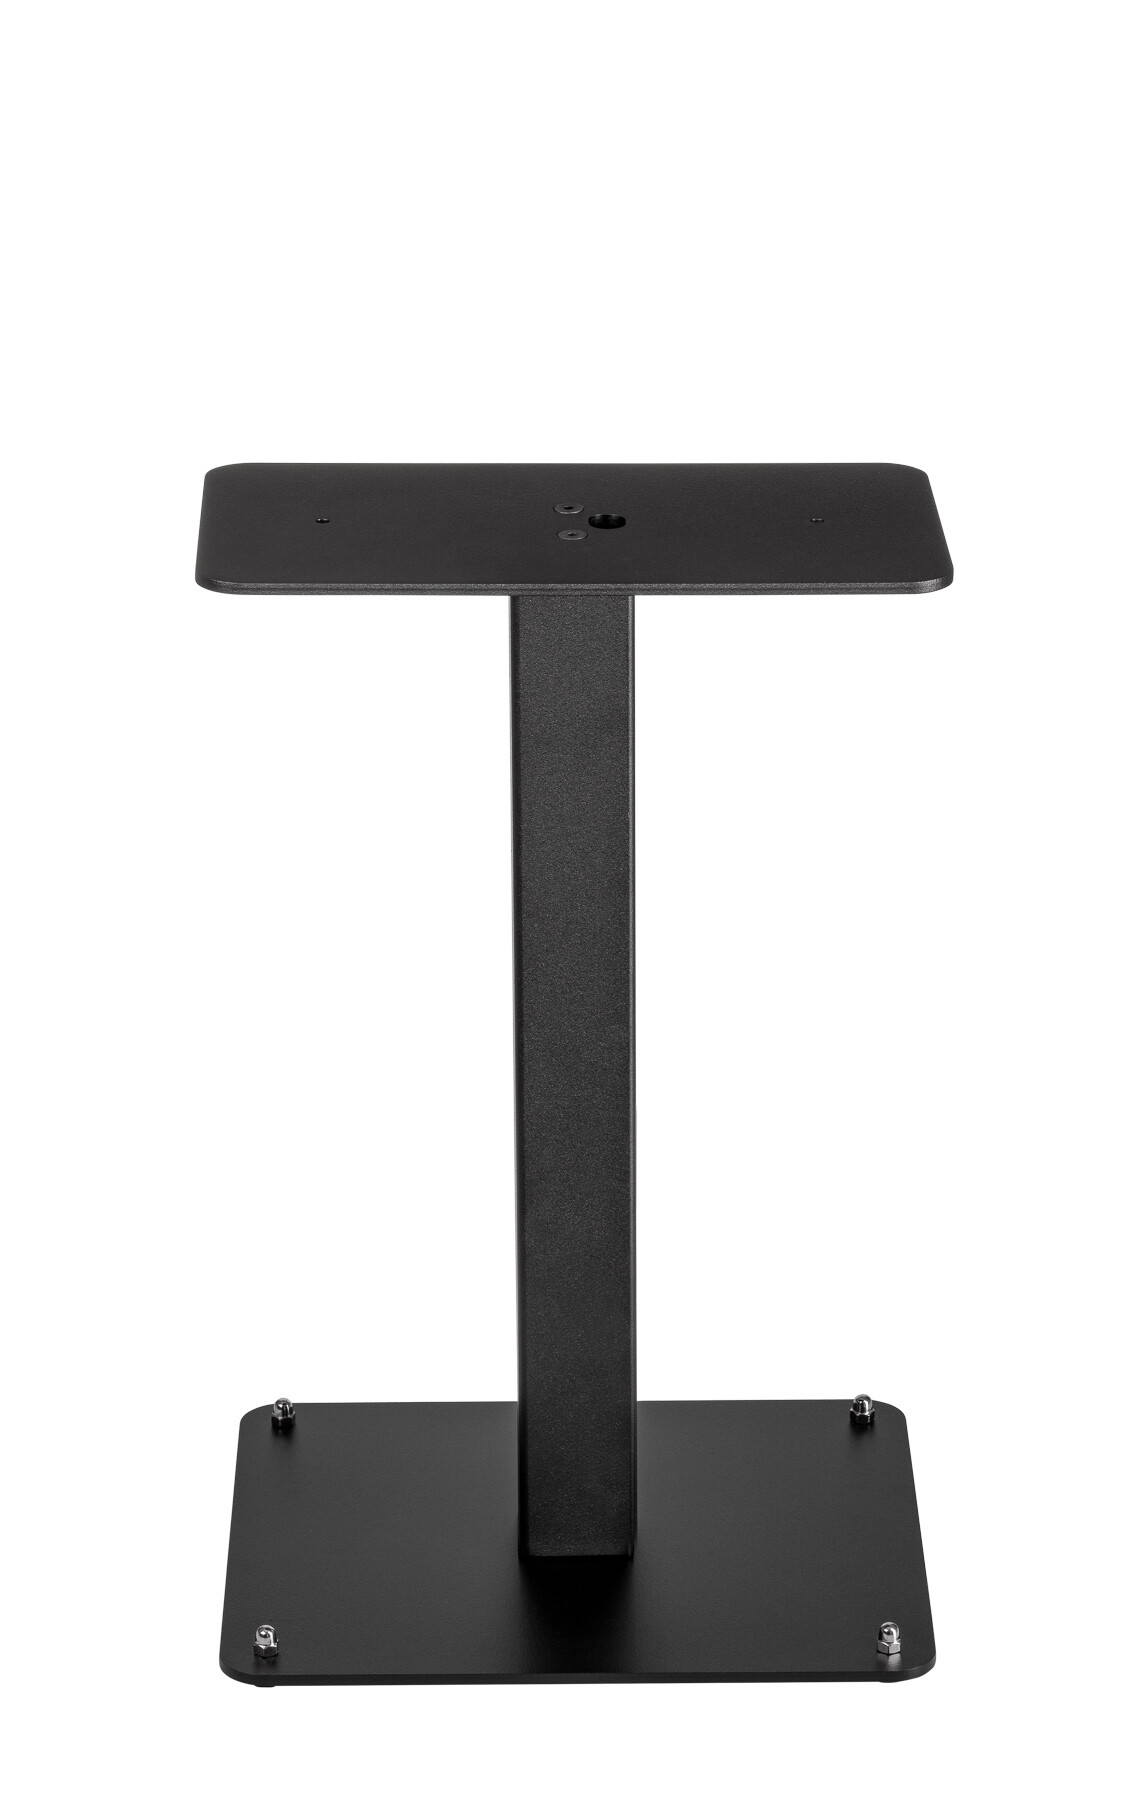 Ad Astra Center Speaker Stand Medium - Product photography sample